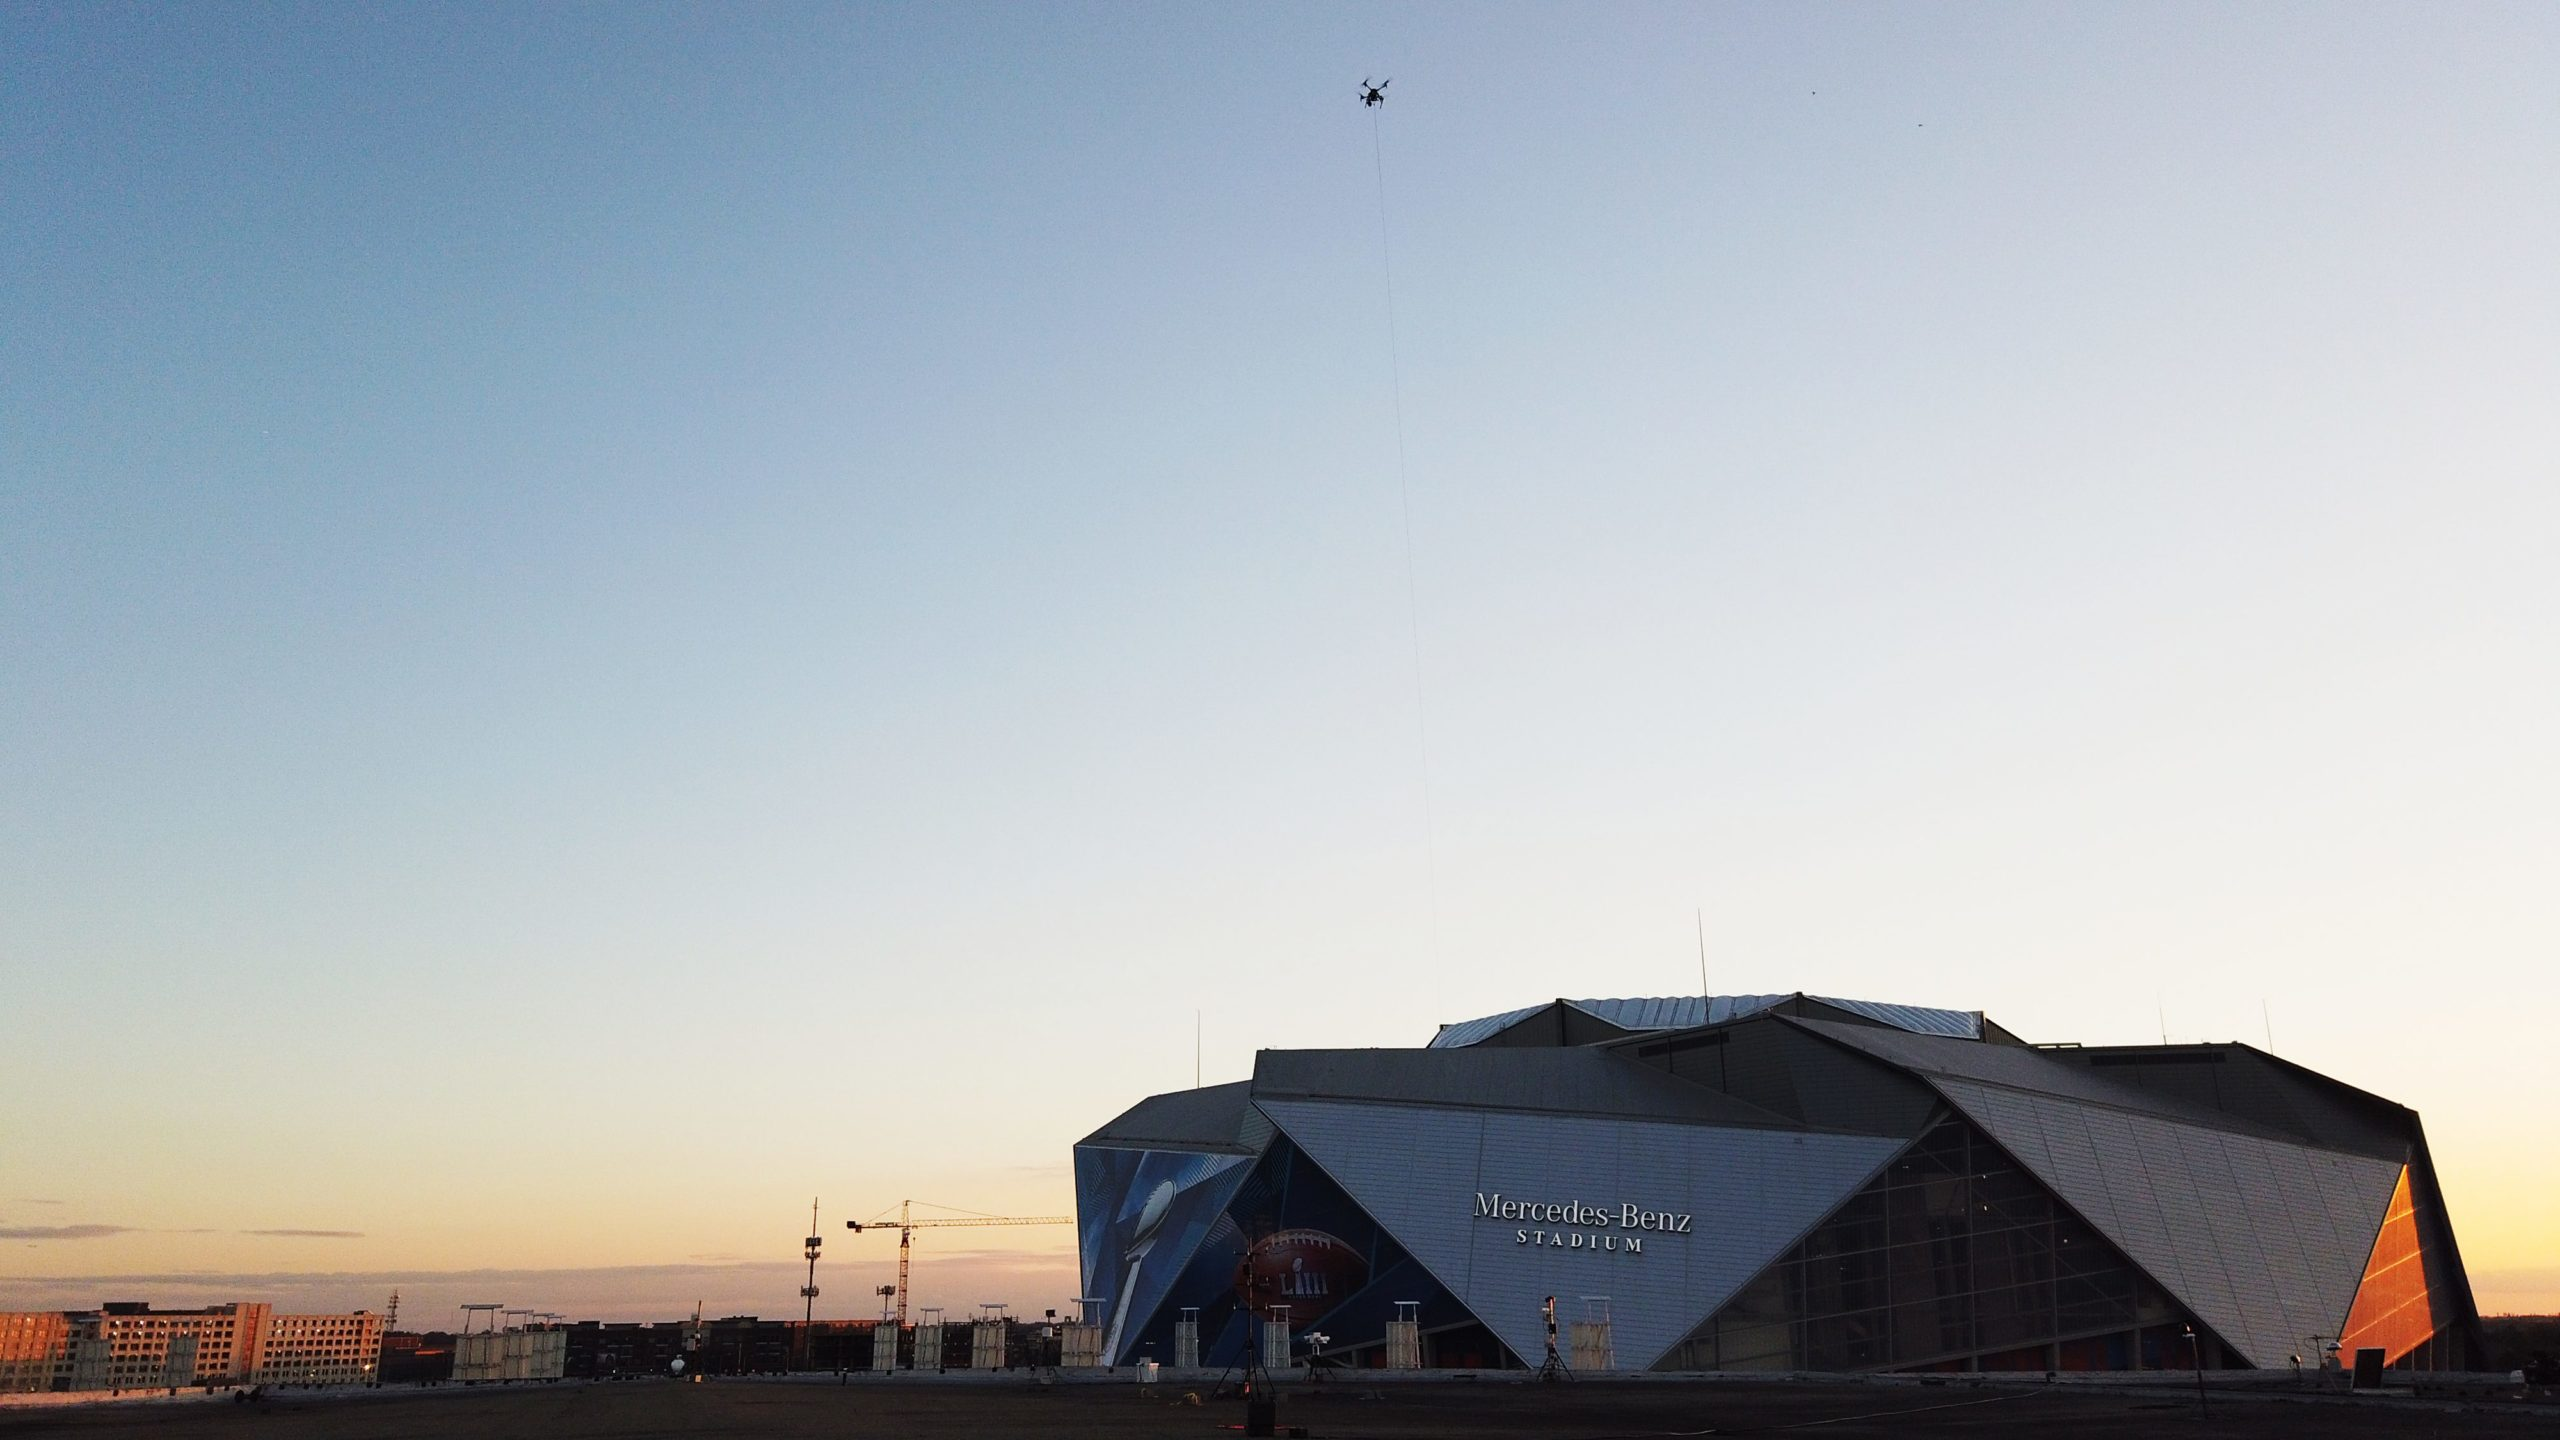 Elistair tethered drones selected for broadcasting & security at the Super Bowl